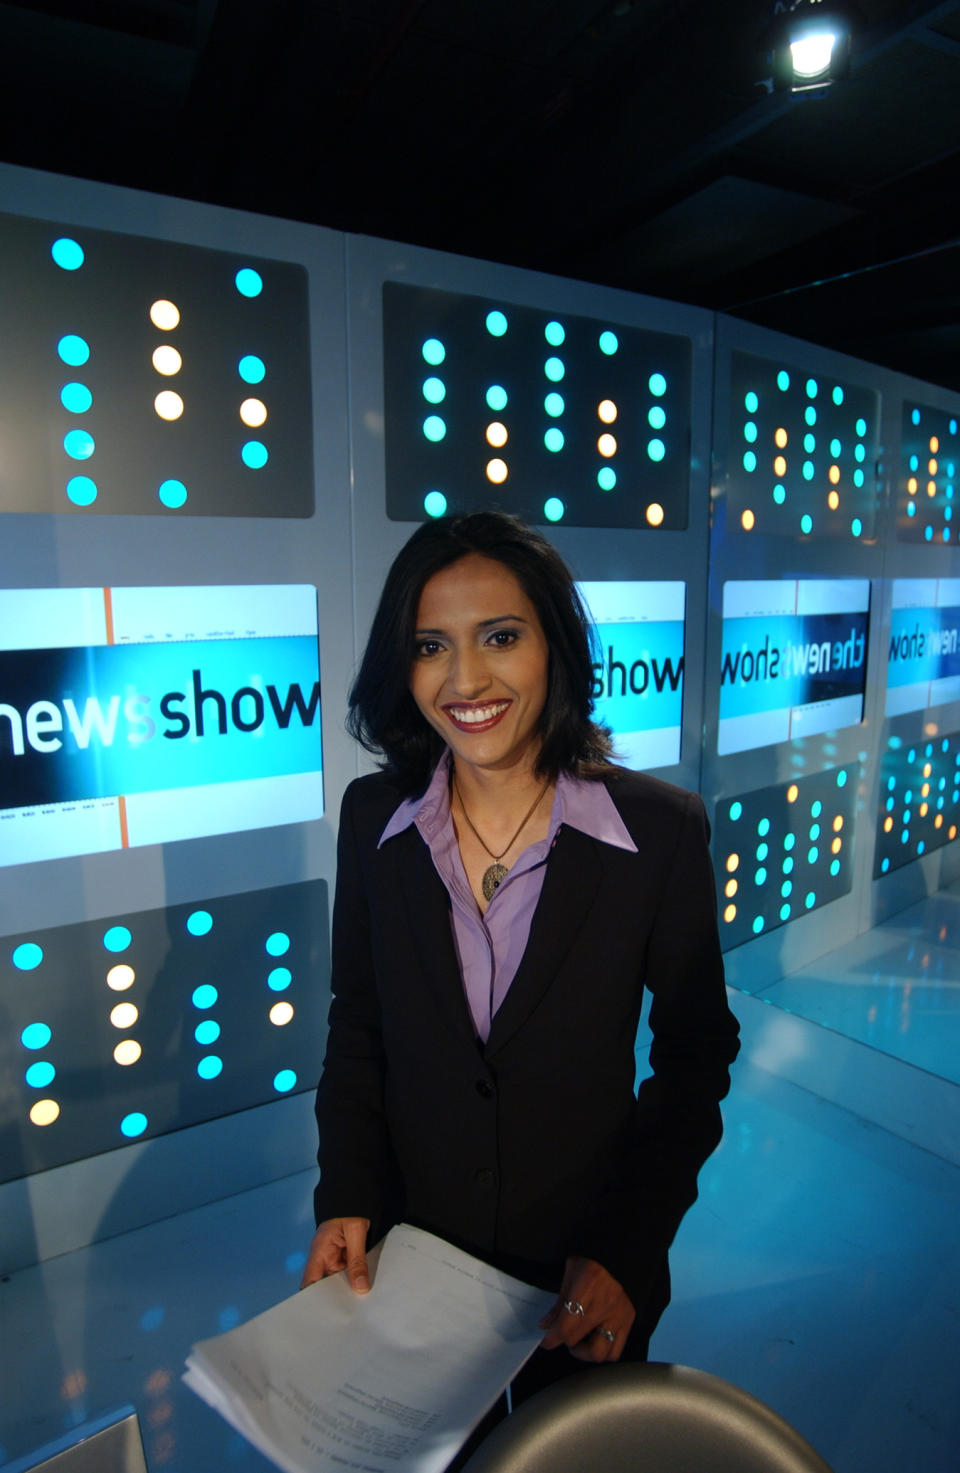 Tazeen Ahmad. (Photo by Jeff Overs/BBC News & Current Affairs via Getty Images)